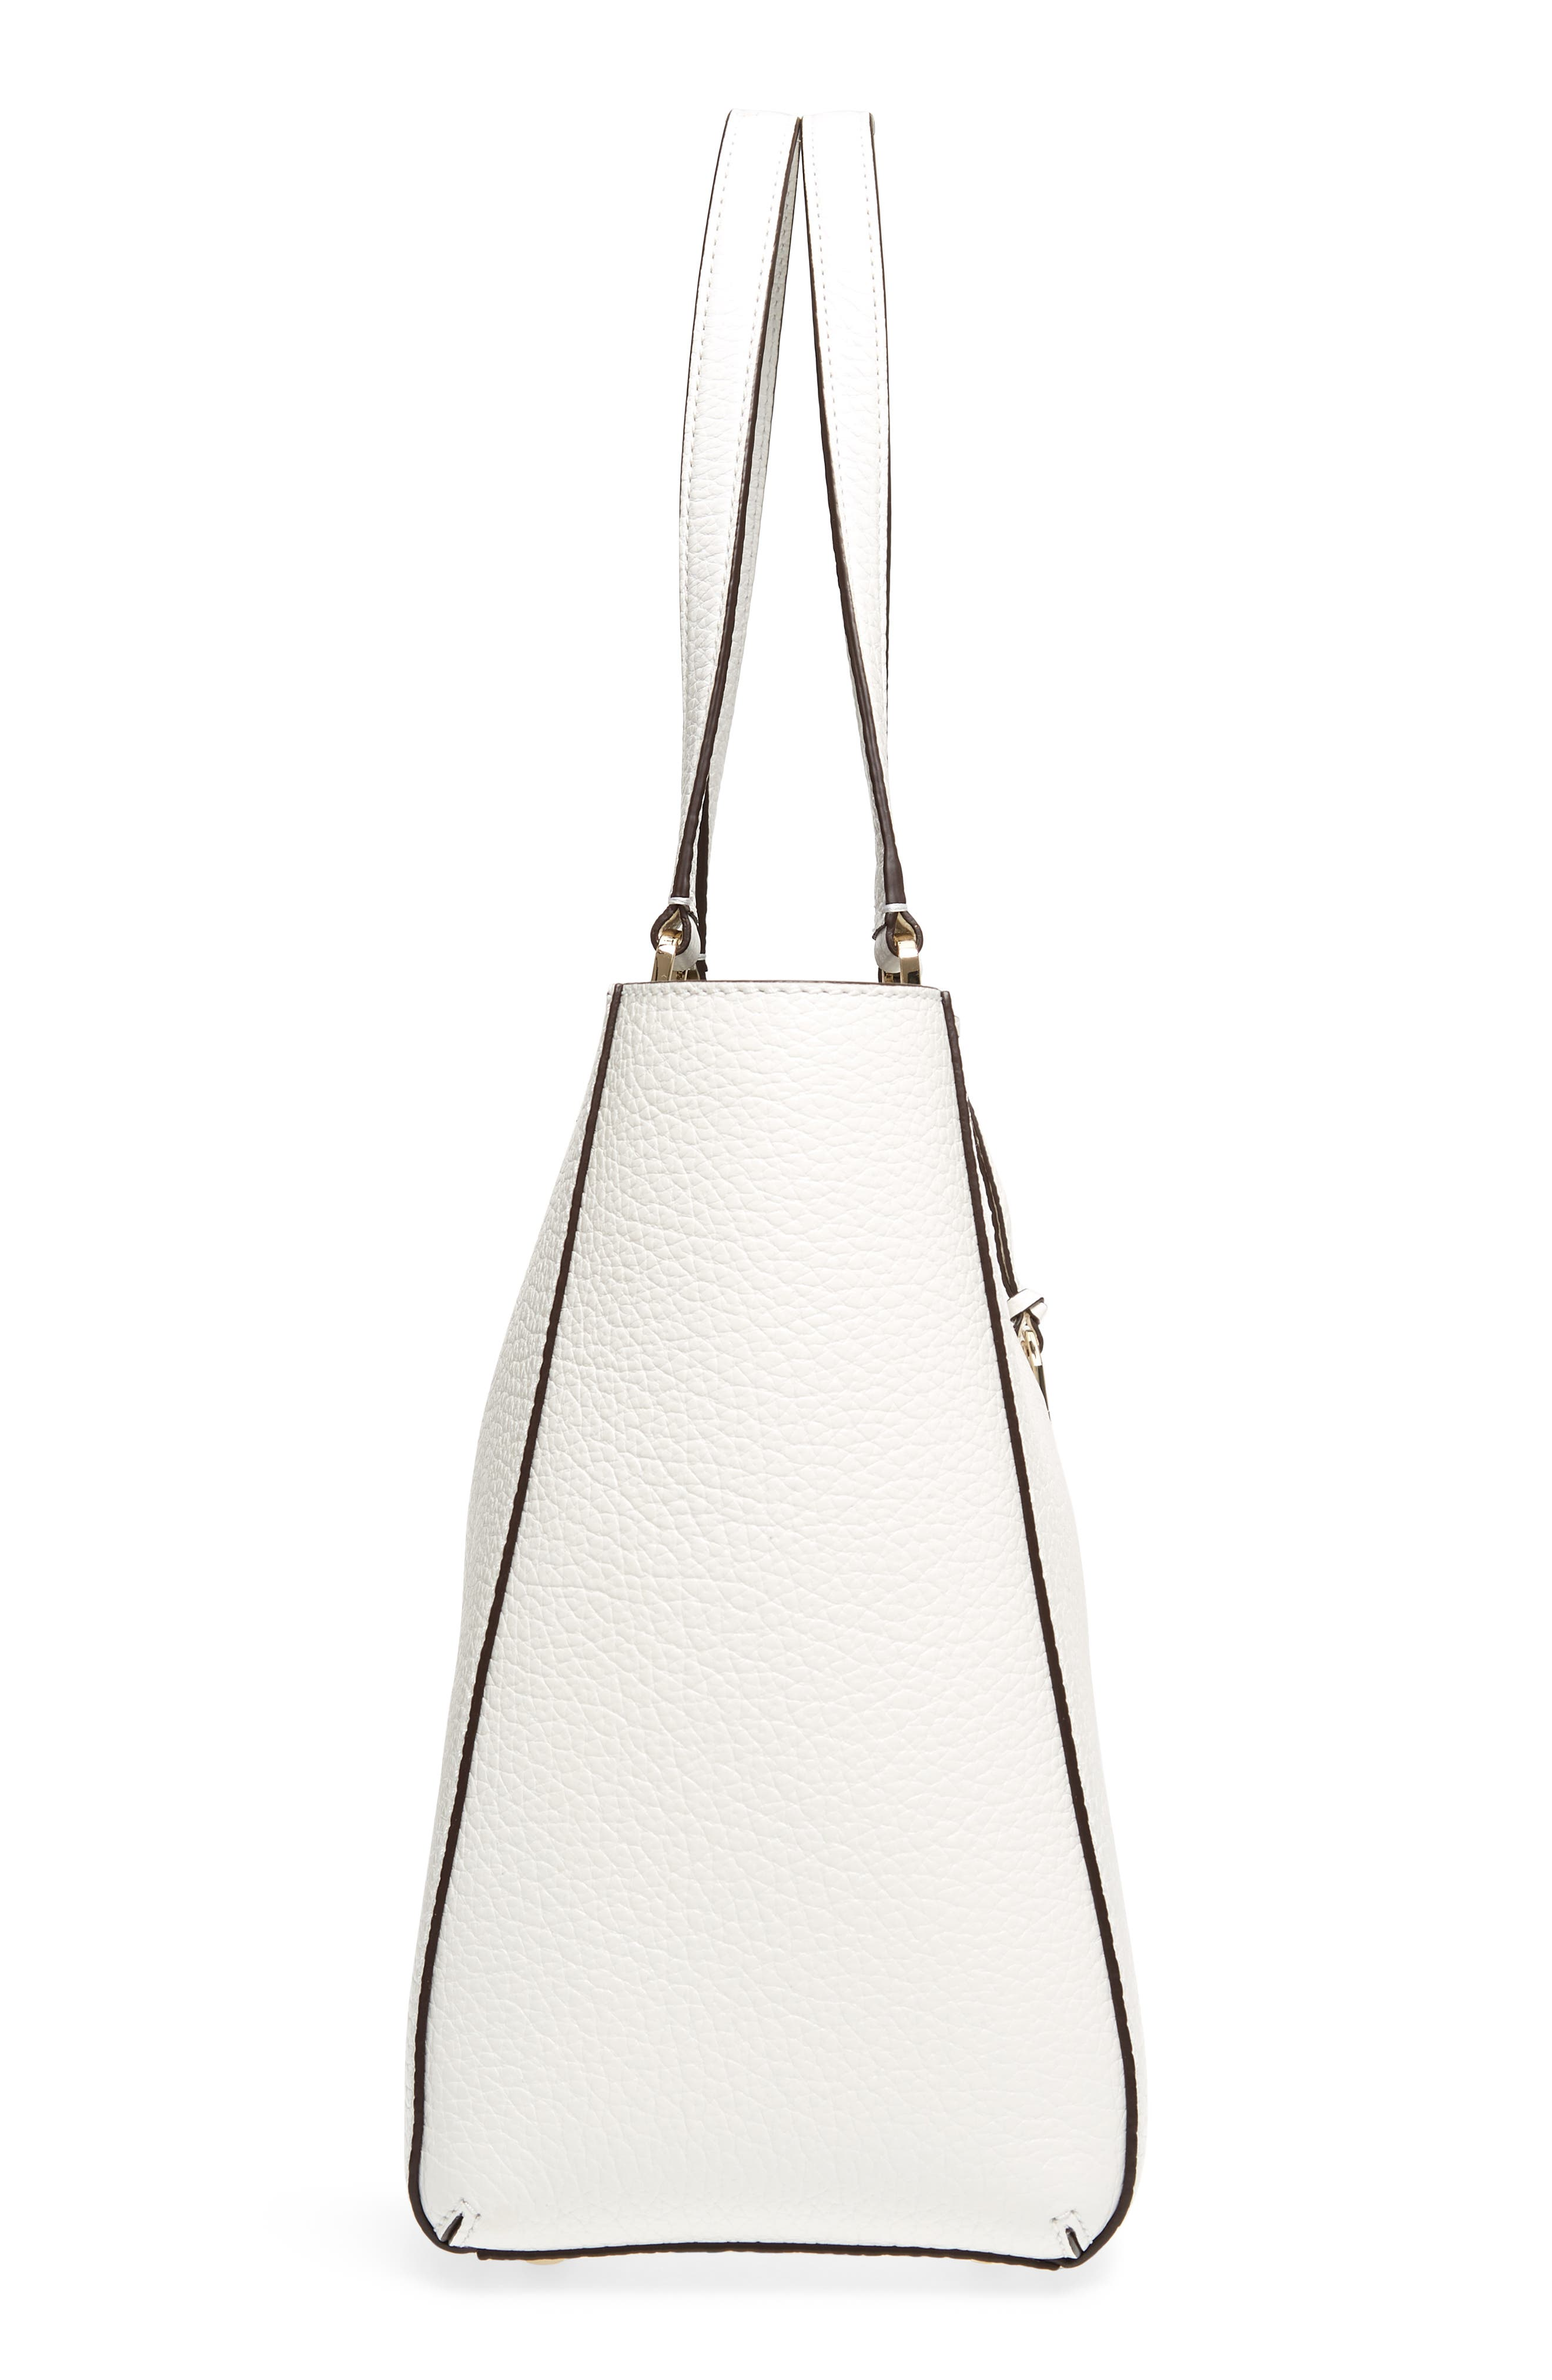 carter street - tyler leather tote,                             Alternate thumbnail 5, color,                             Bright White